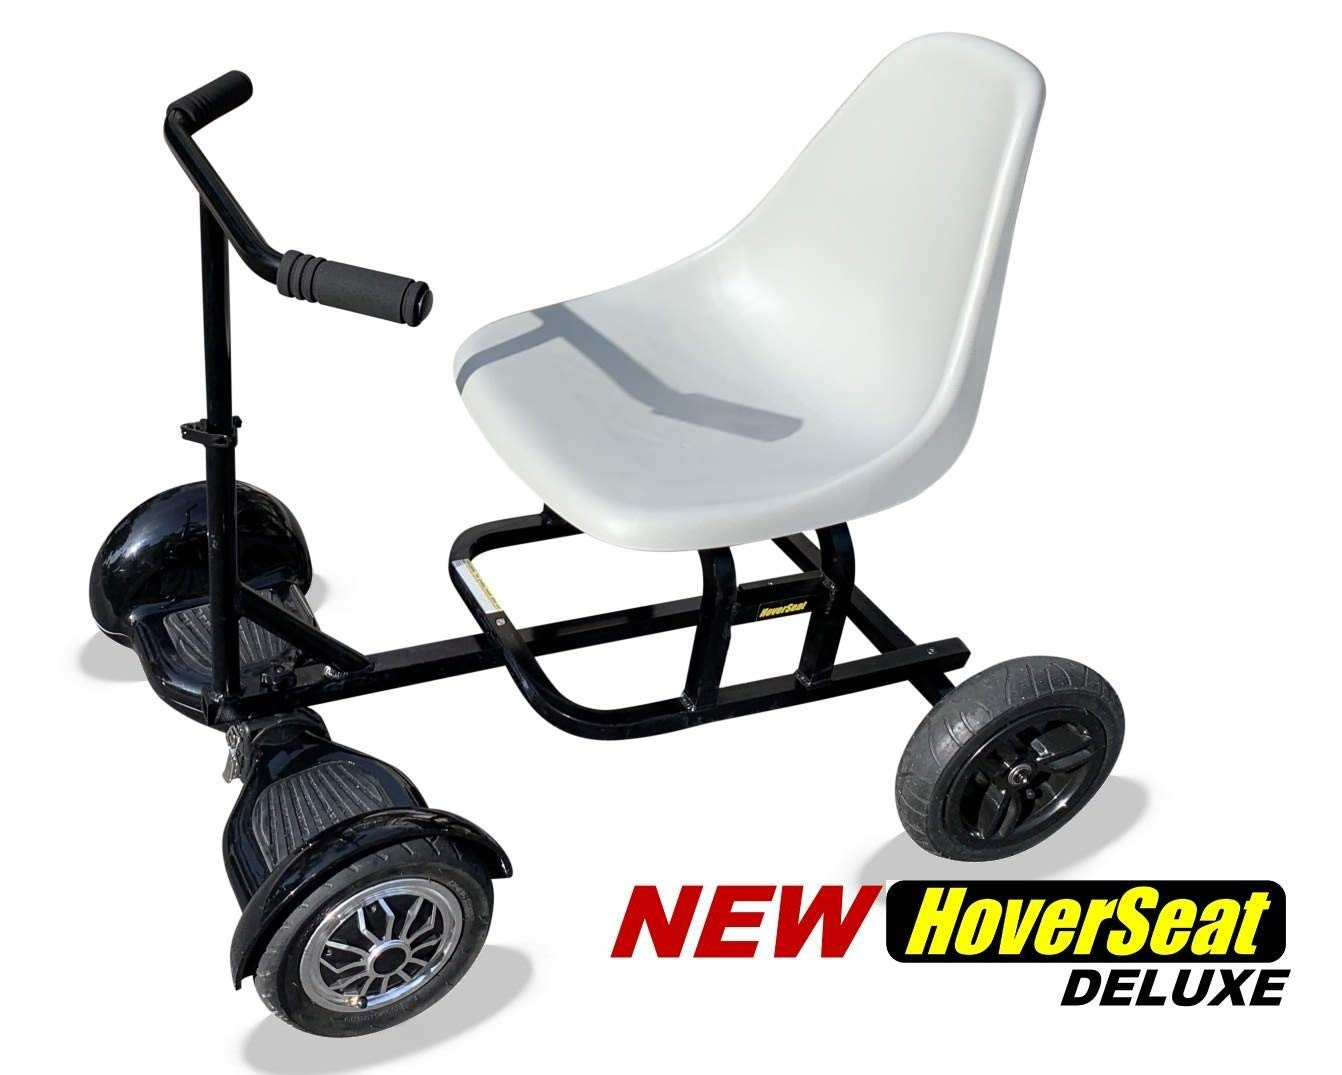 HoverSeat Deluxe Attachment Hoverboard Balancing